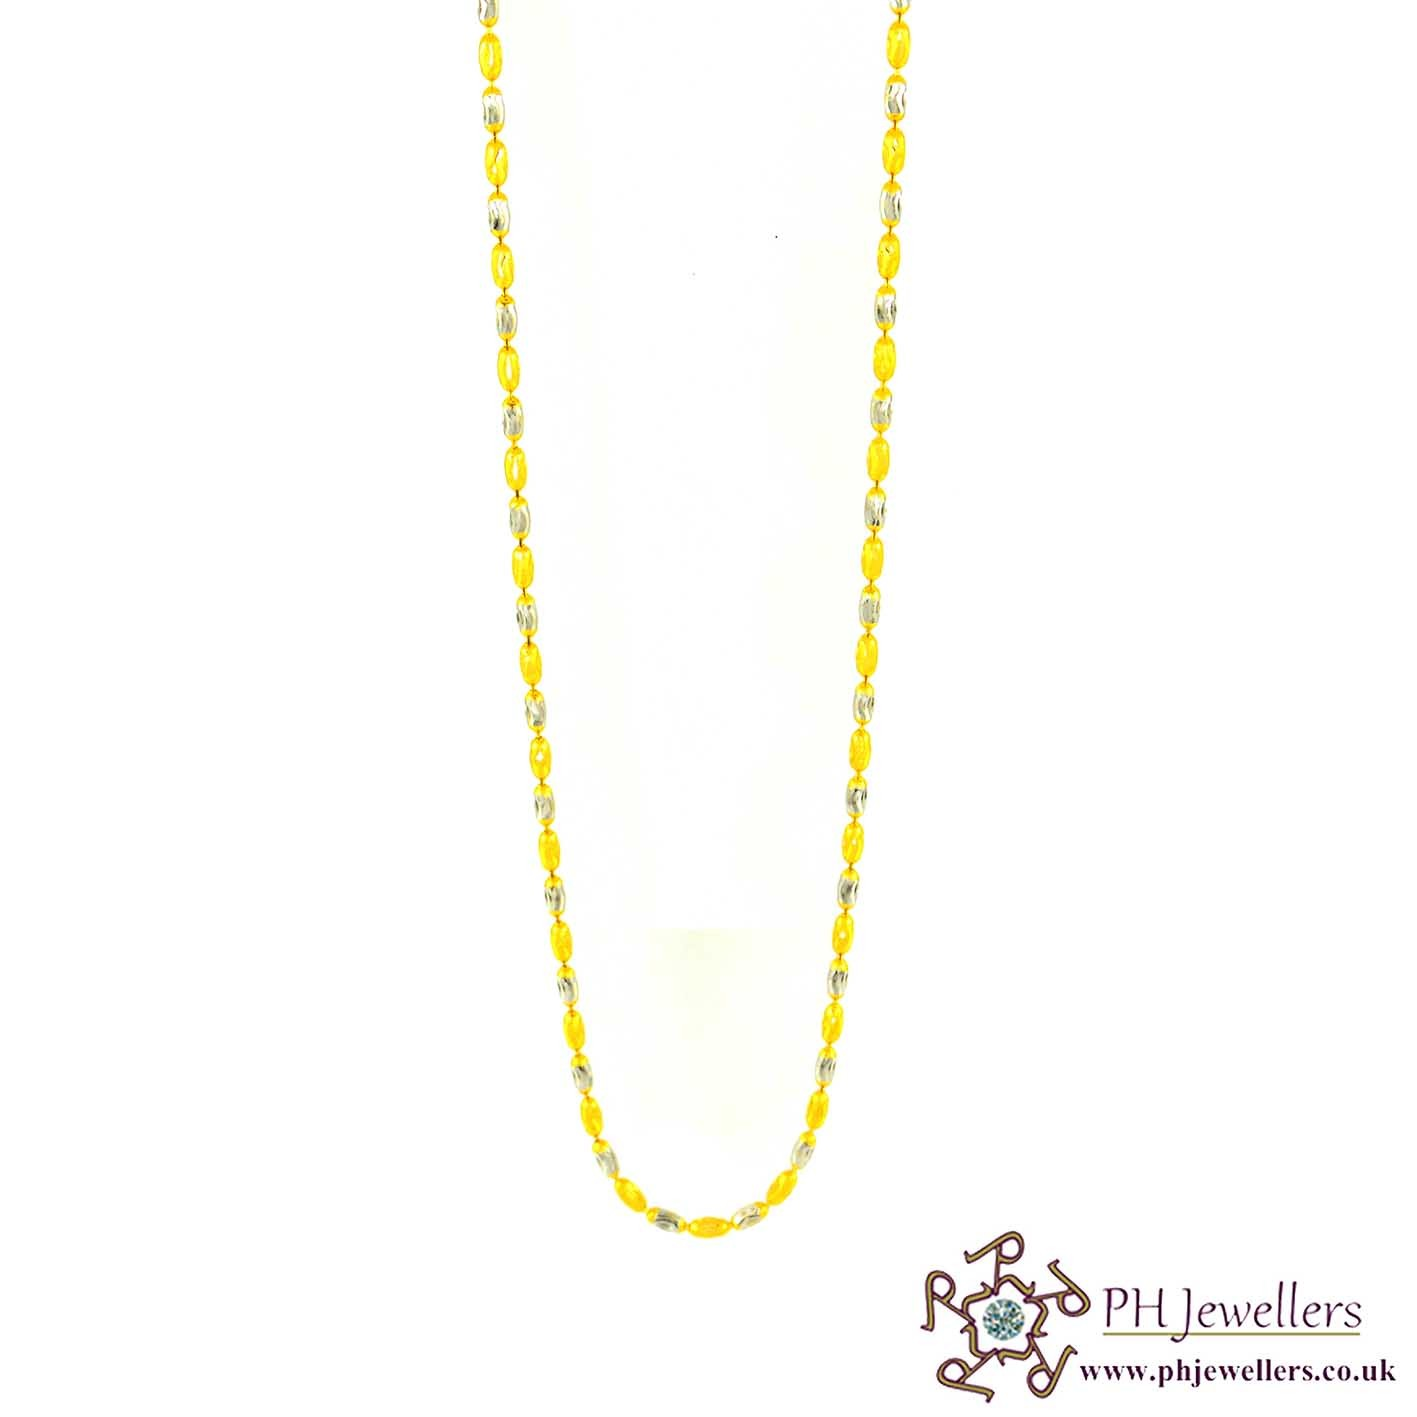 22ct 916 Hallmark Yellow Gold Rhodium Chain RC1